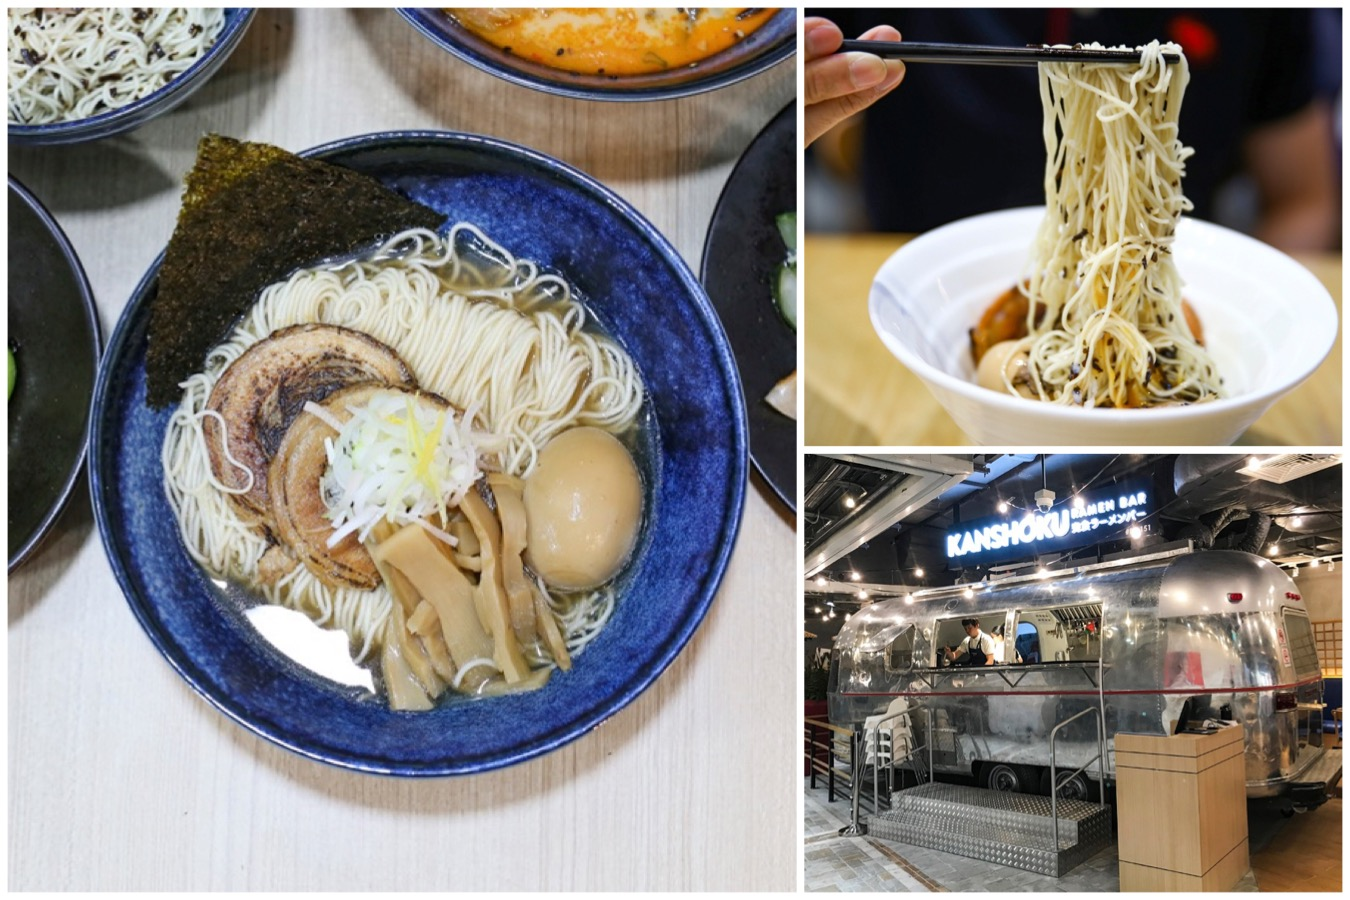 Kanshoku Ramen Bar Northpoint City – Introducing NEW Yuzu Ramen, And Look Out For The Food Truck